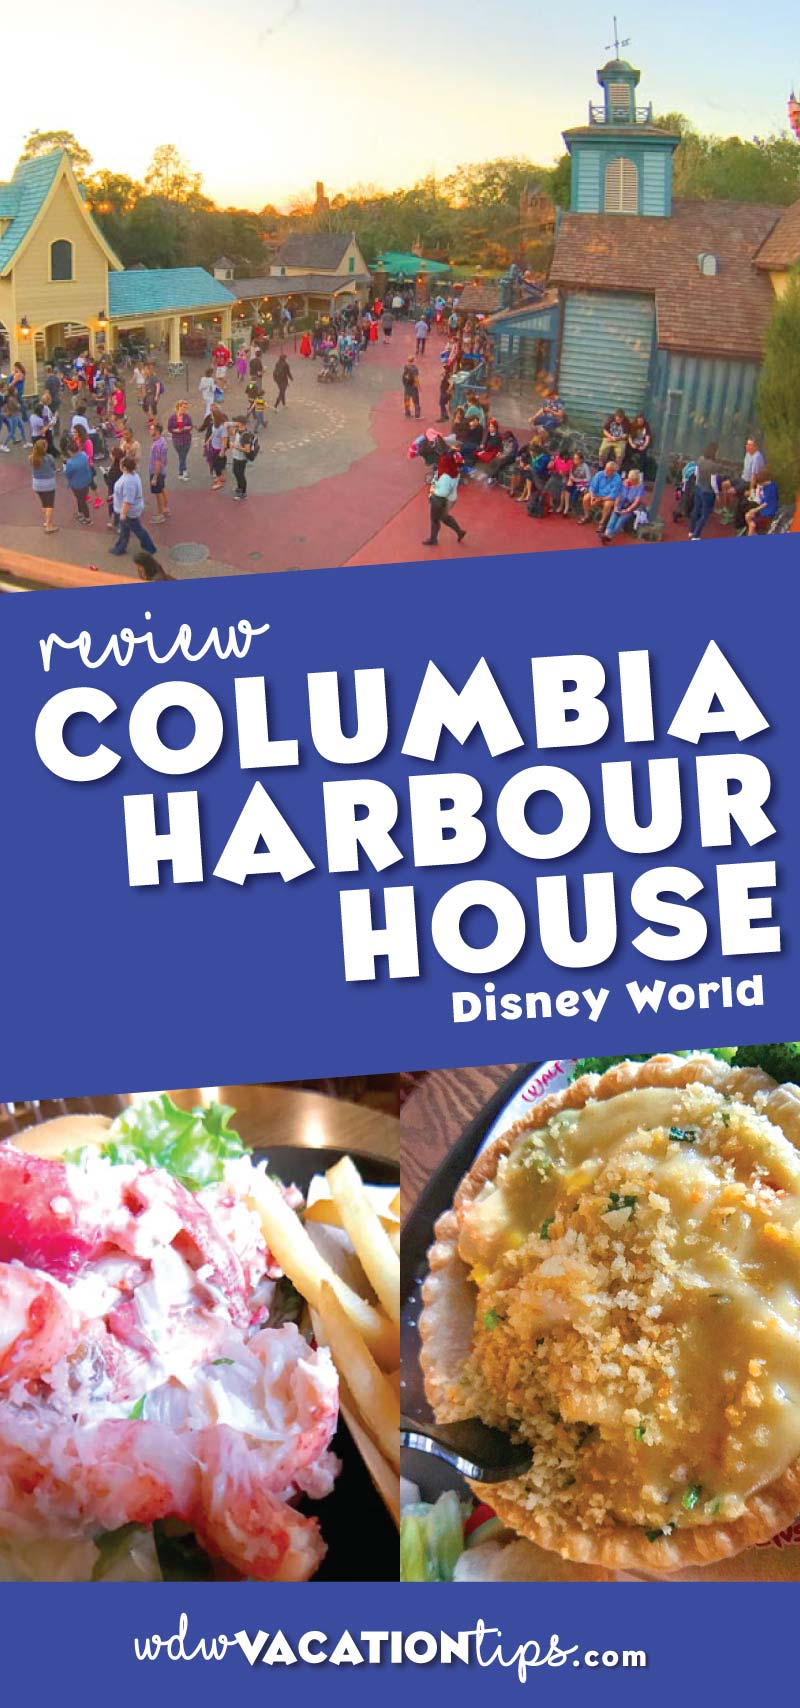 Columbia Harbor House is a quick service restaurant that mostly serves seafood, located in the Magic Kingdom Walt Disney World.